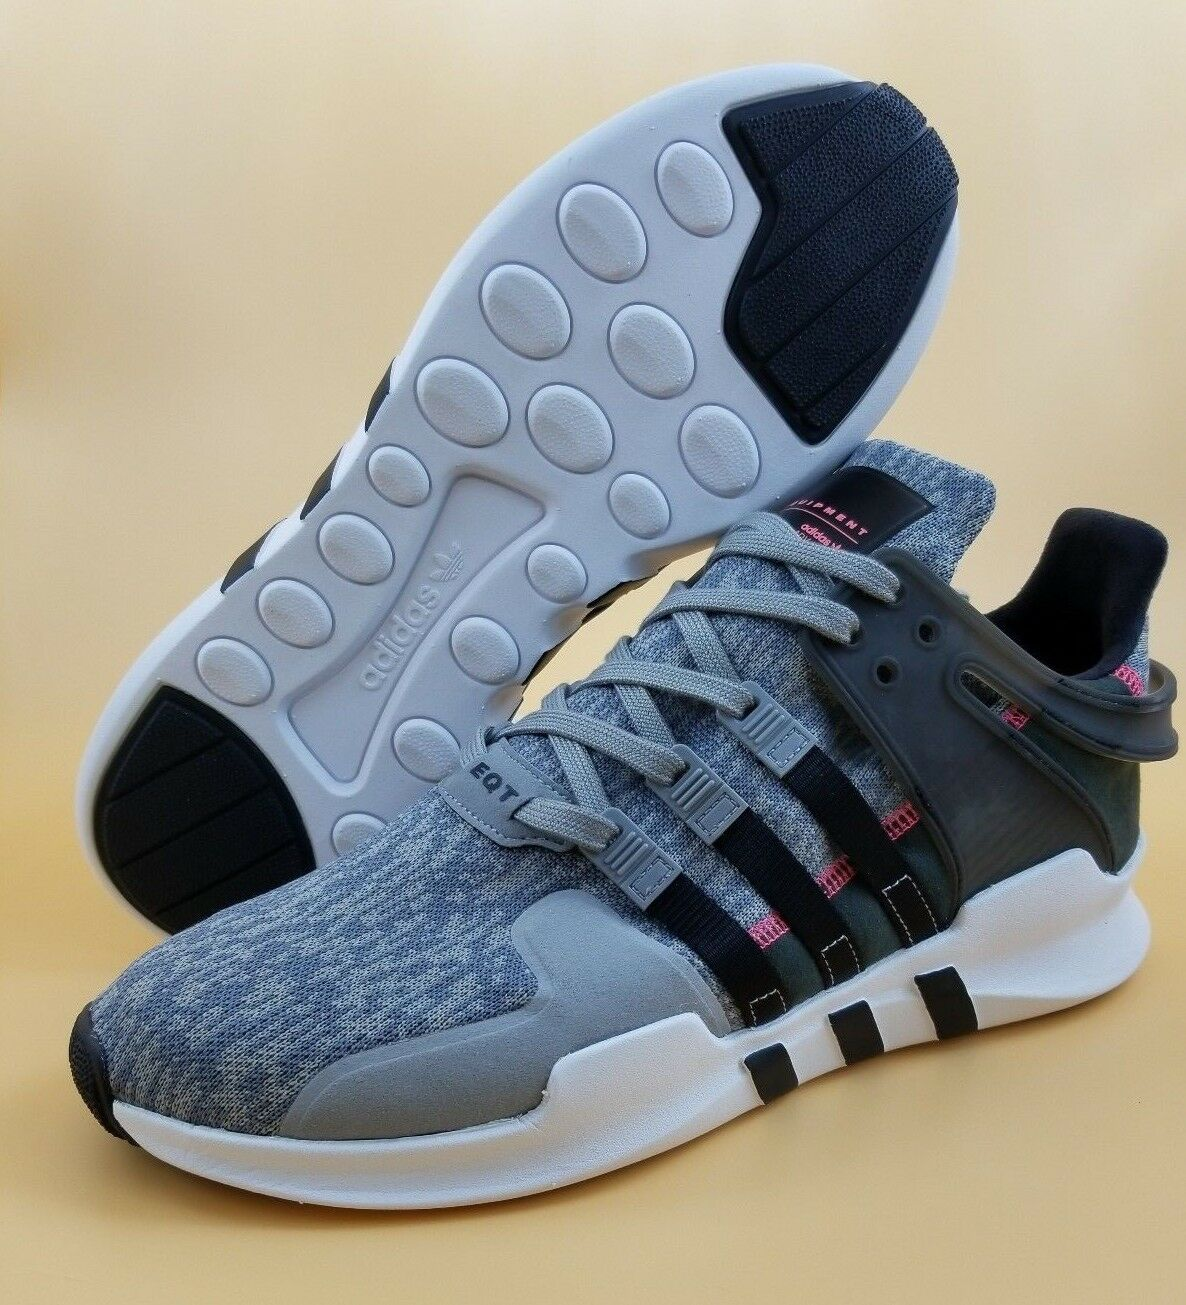 Adidas EQT Support ADV Men Running Shoes Grey Pixel S76963 $140